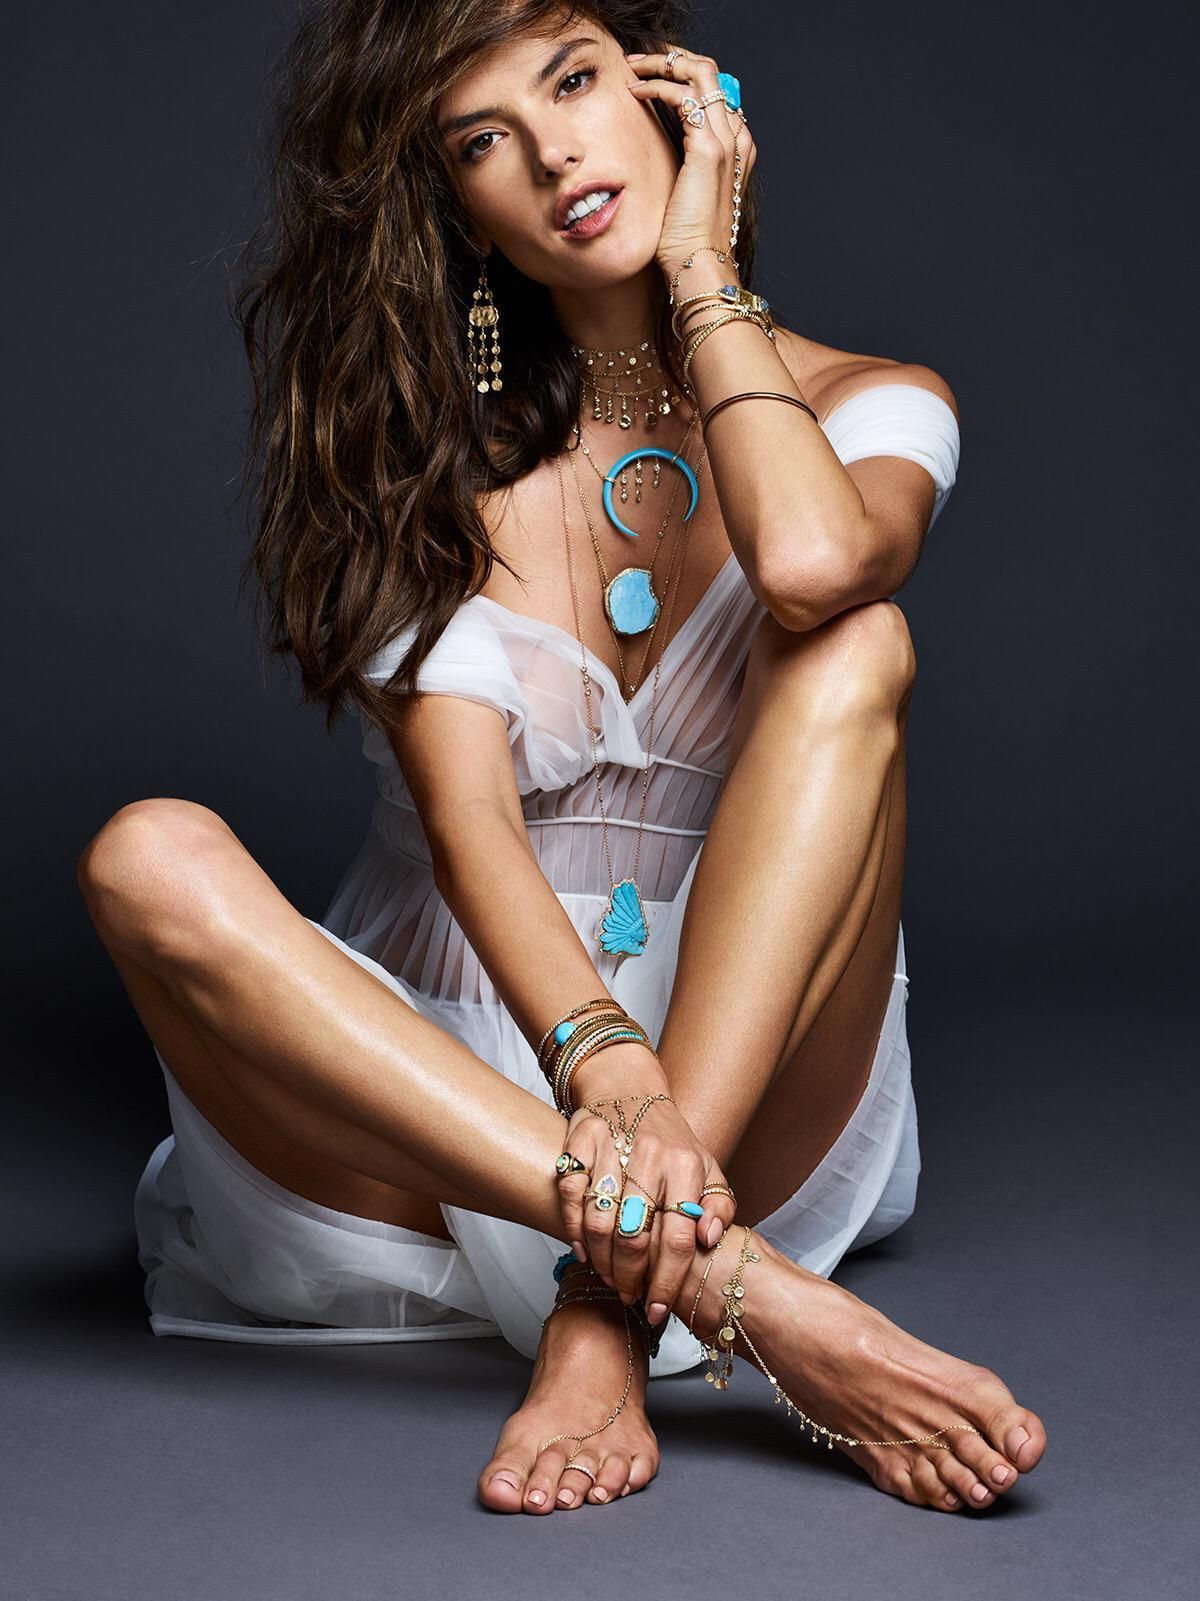 Feet Alessandra Ambrosio naked (13 foto and video), Tits, Leaked, Boobs, braless 2018